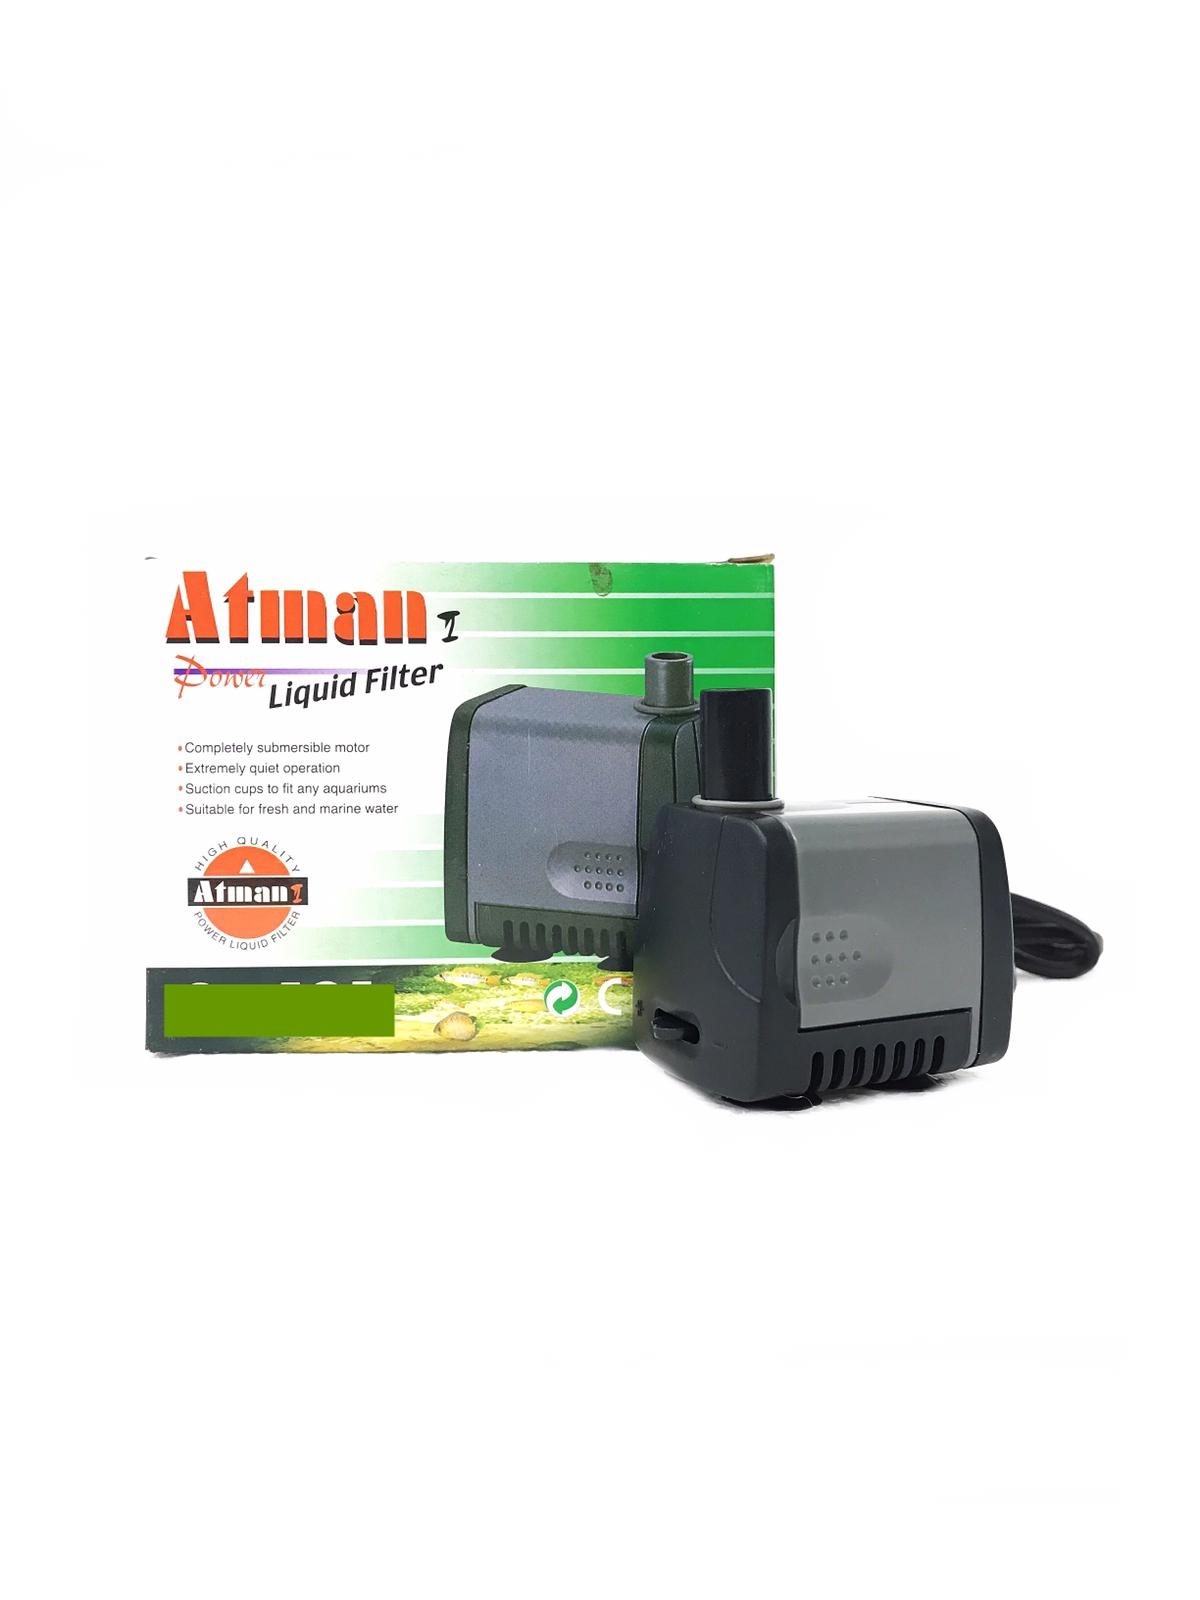 Atman Power Liquid Filter 101 Series